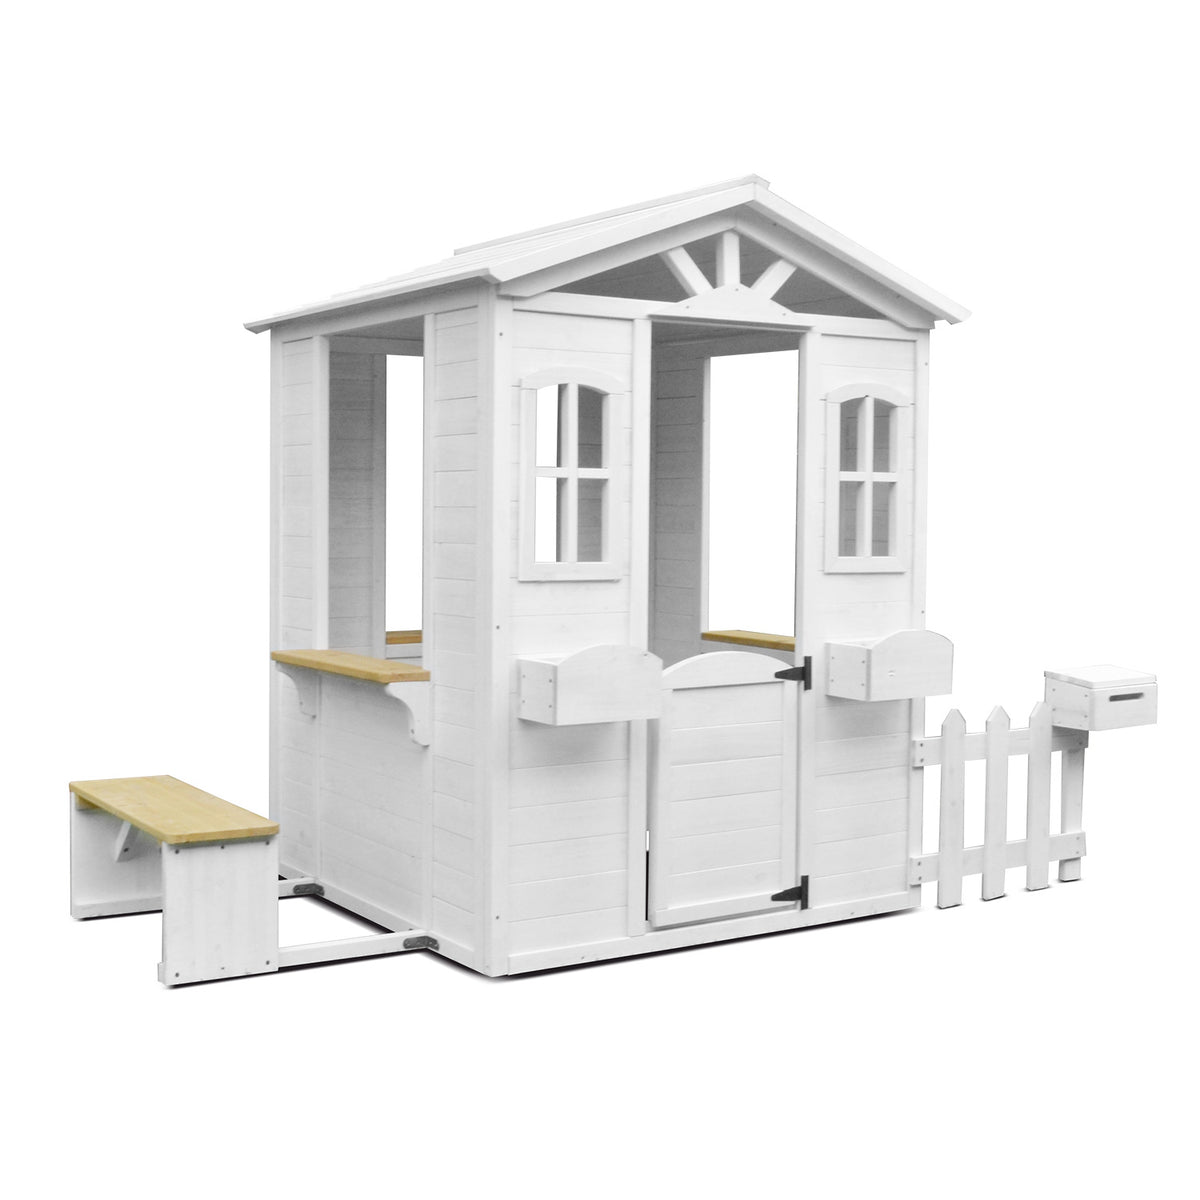 Lifespan Kids Teddy Cubby House with White Picket Fence